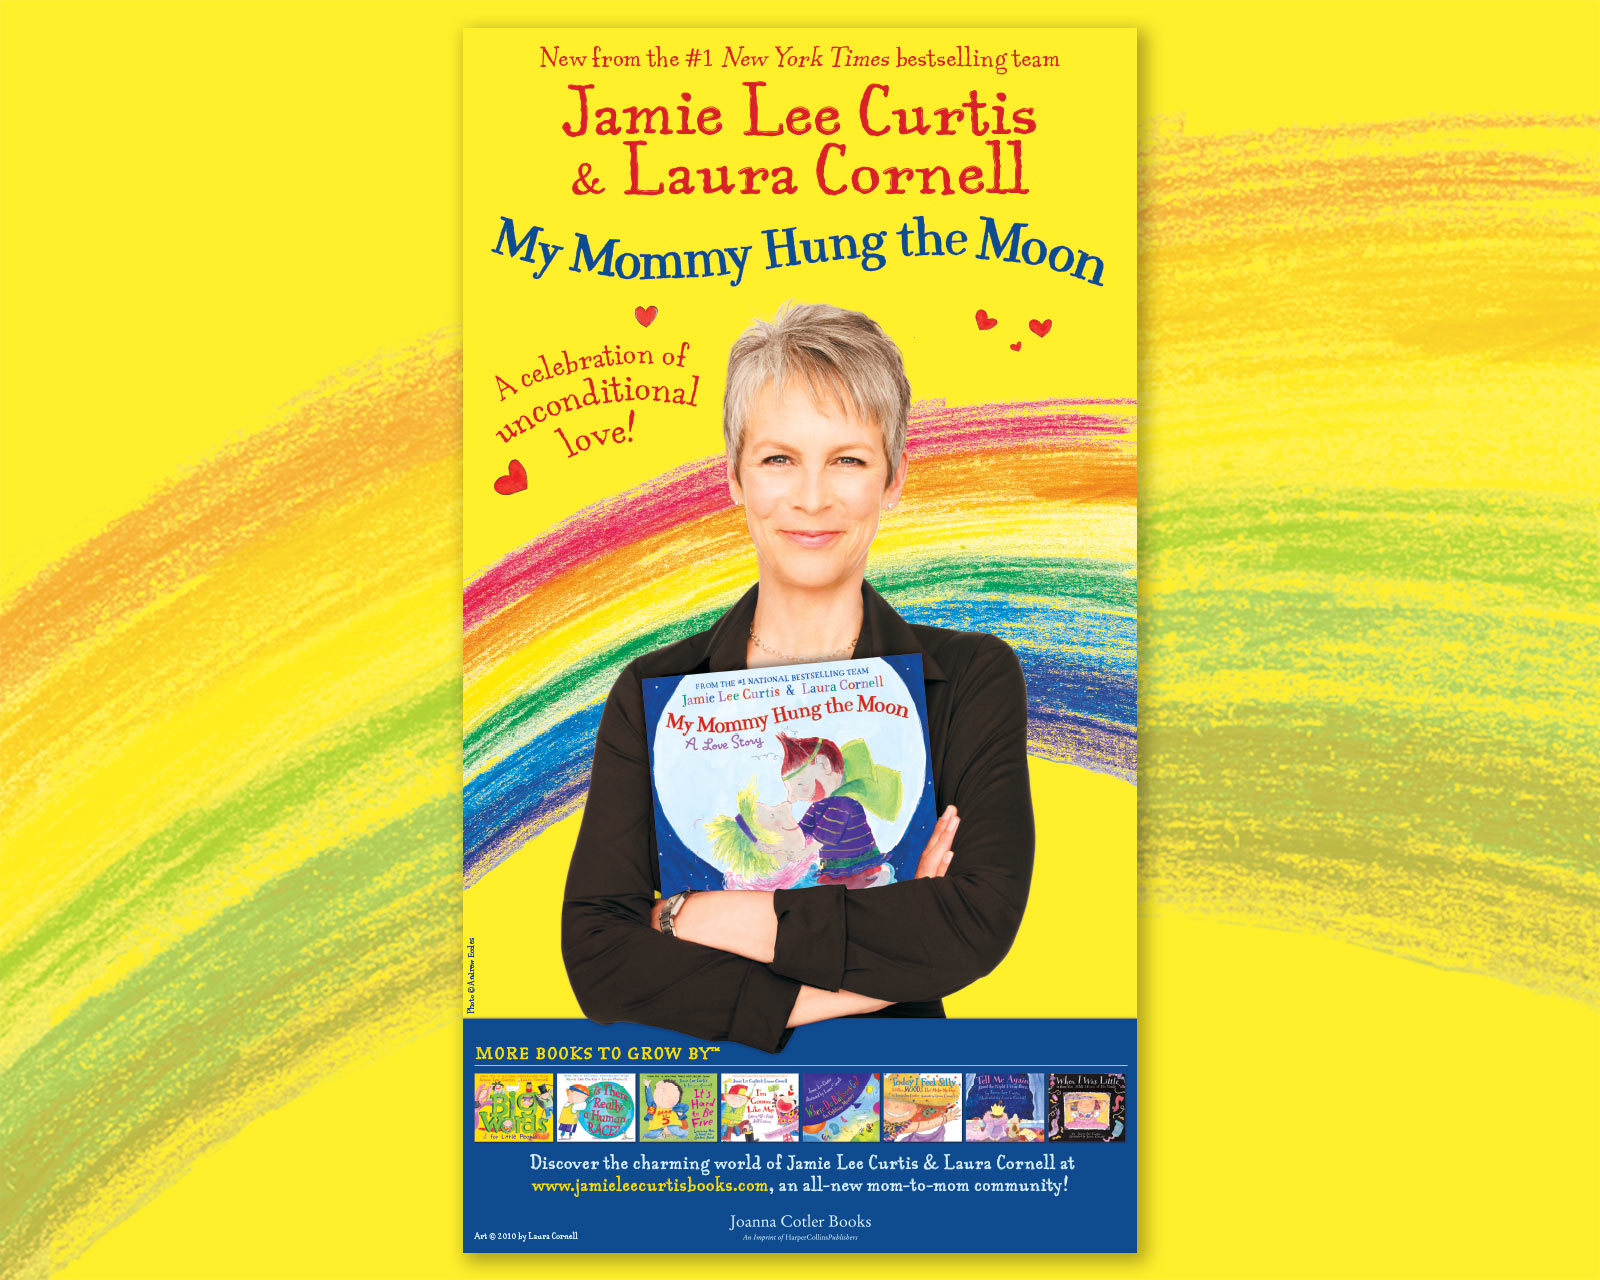 Jamie Lee Curtis - My Mommy Hung The Moon - New York Times